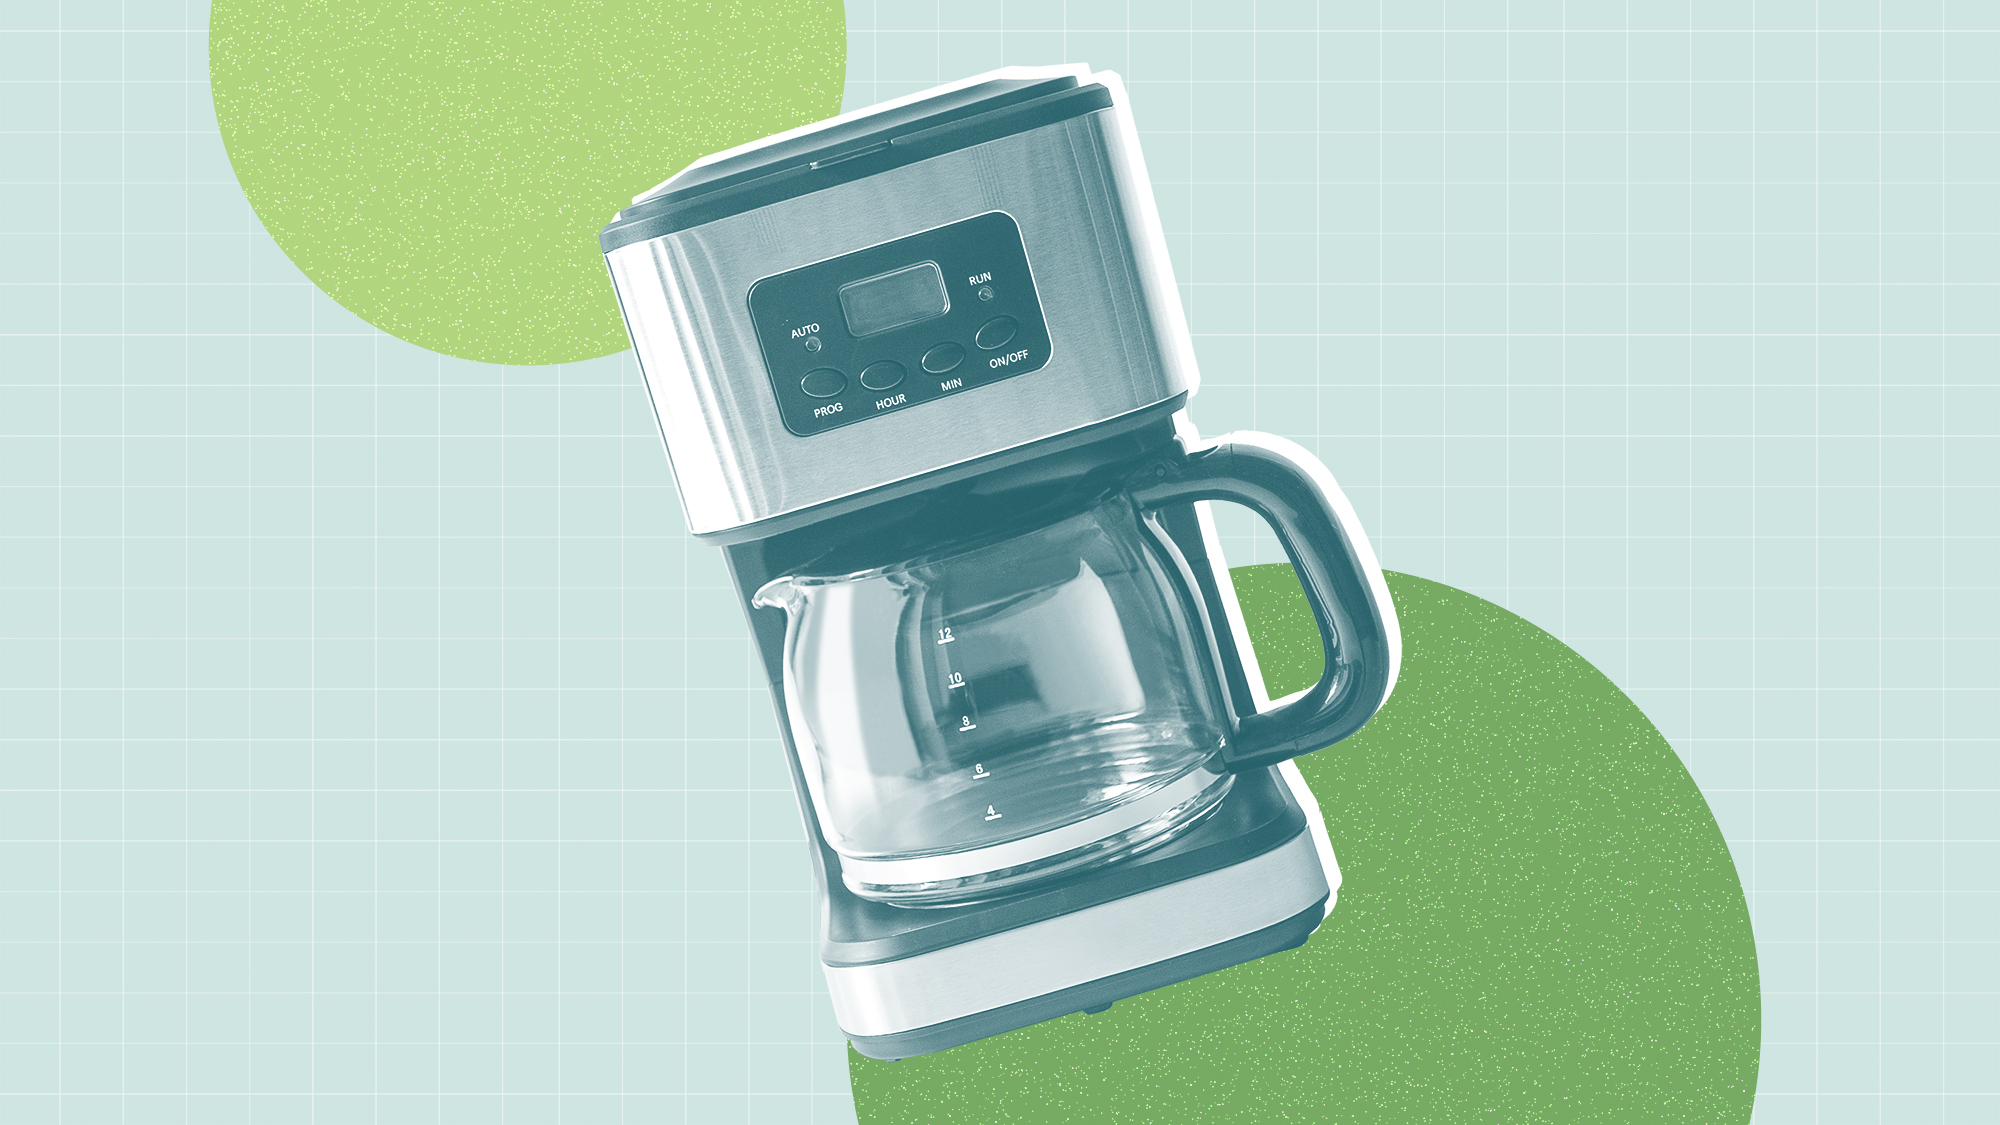 Coffee maker on a designed background